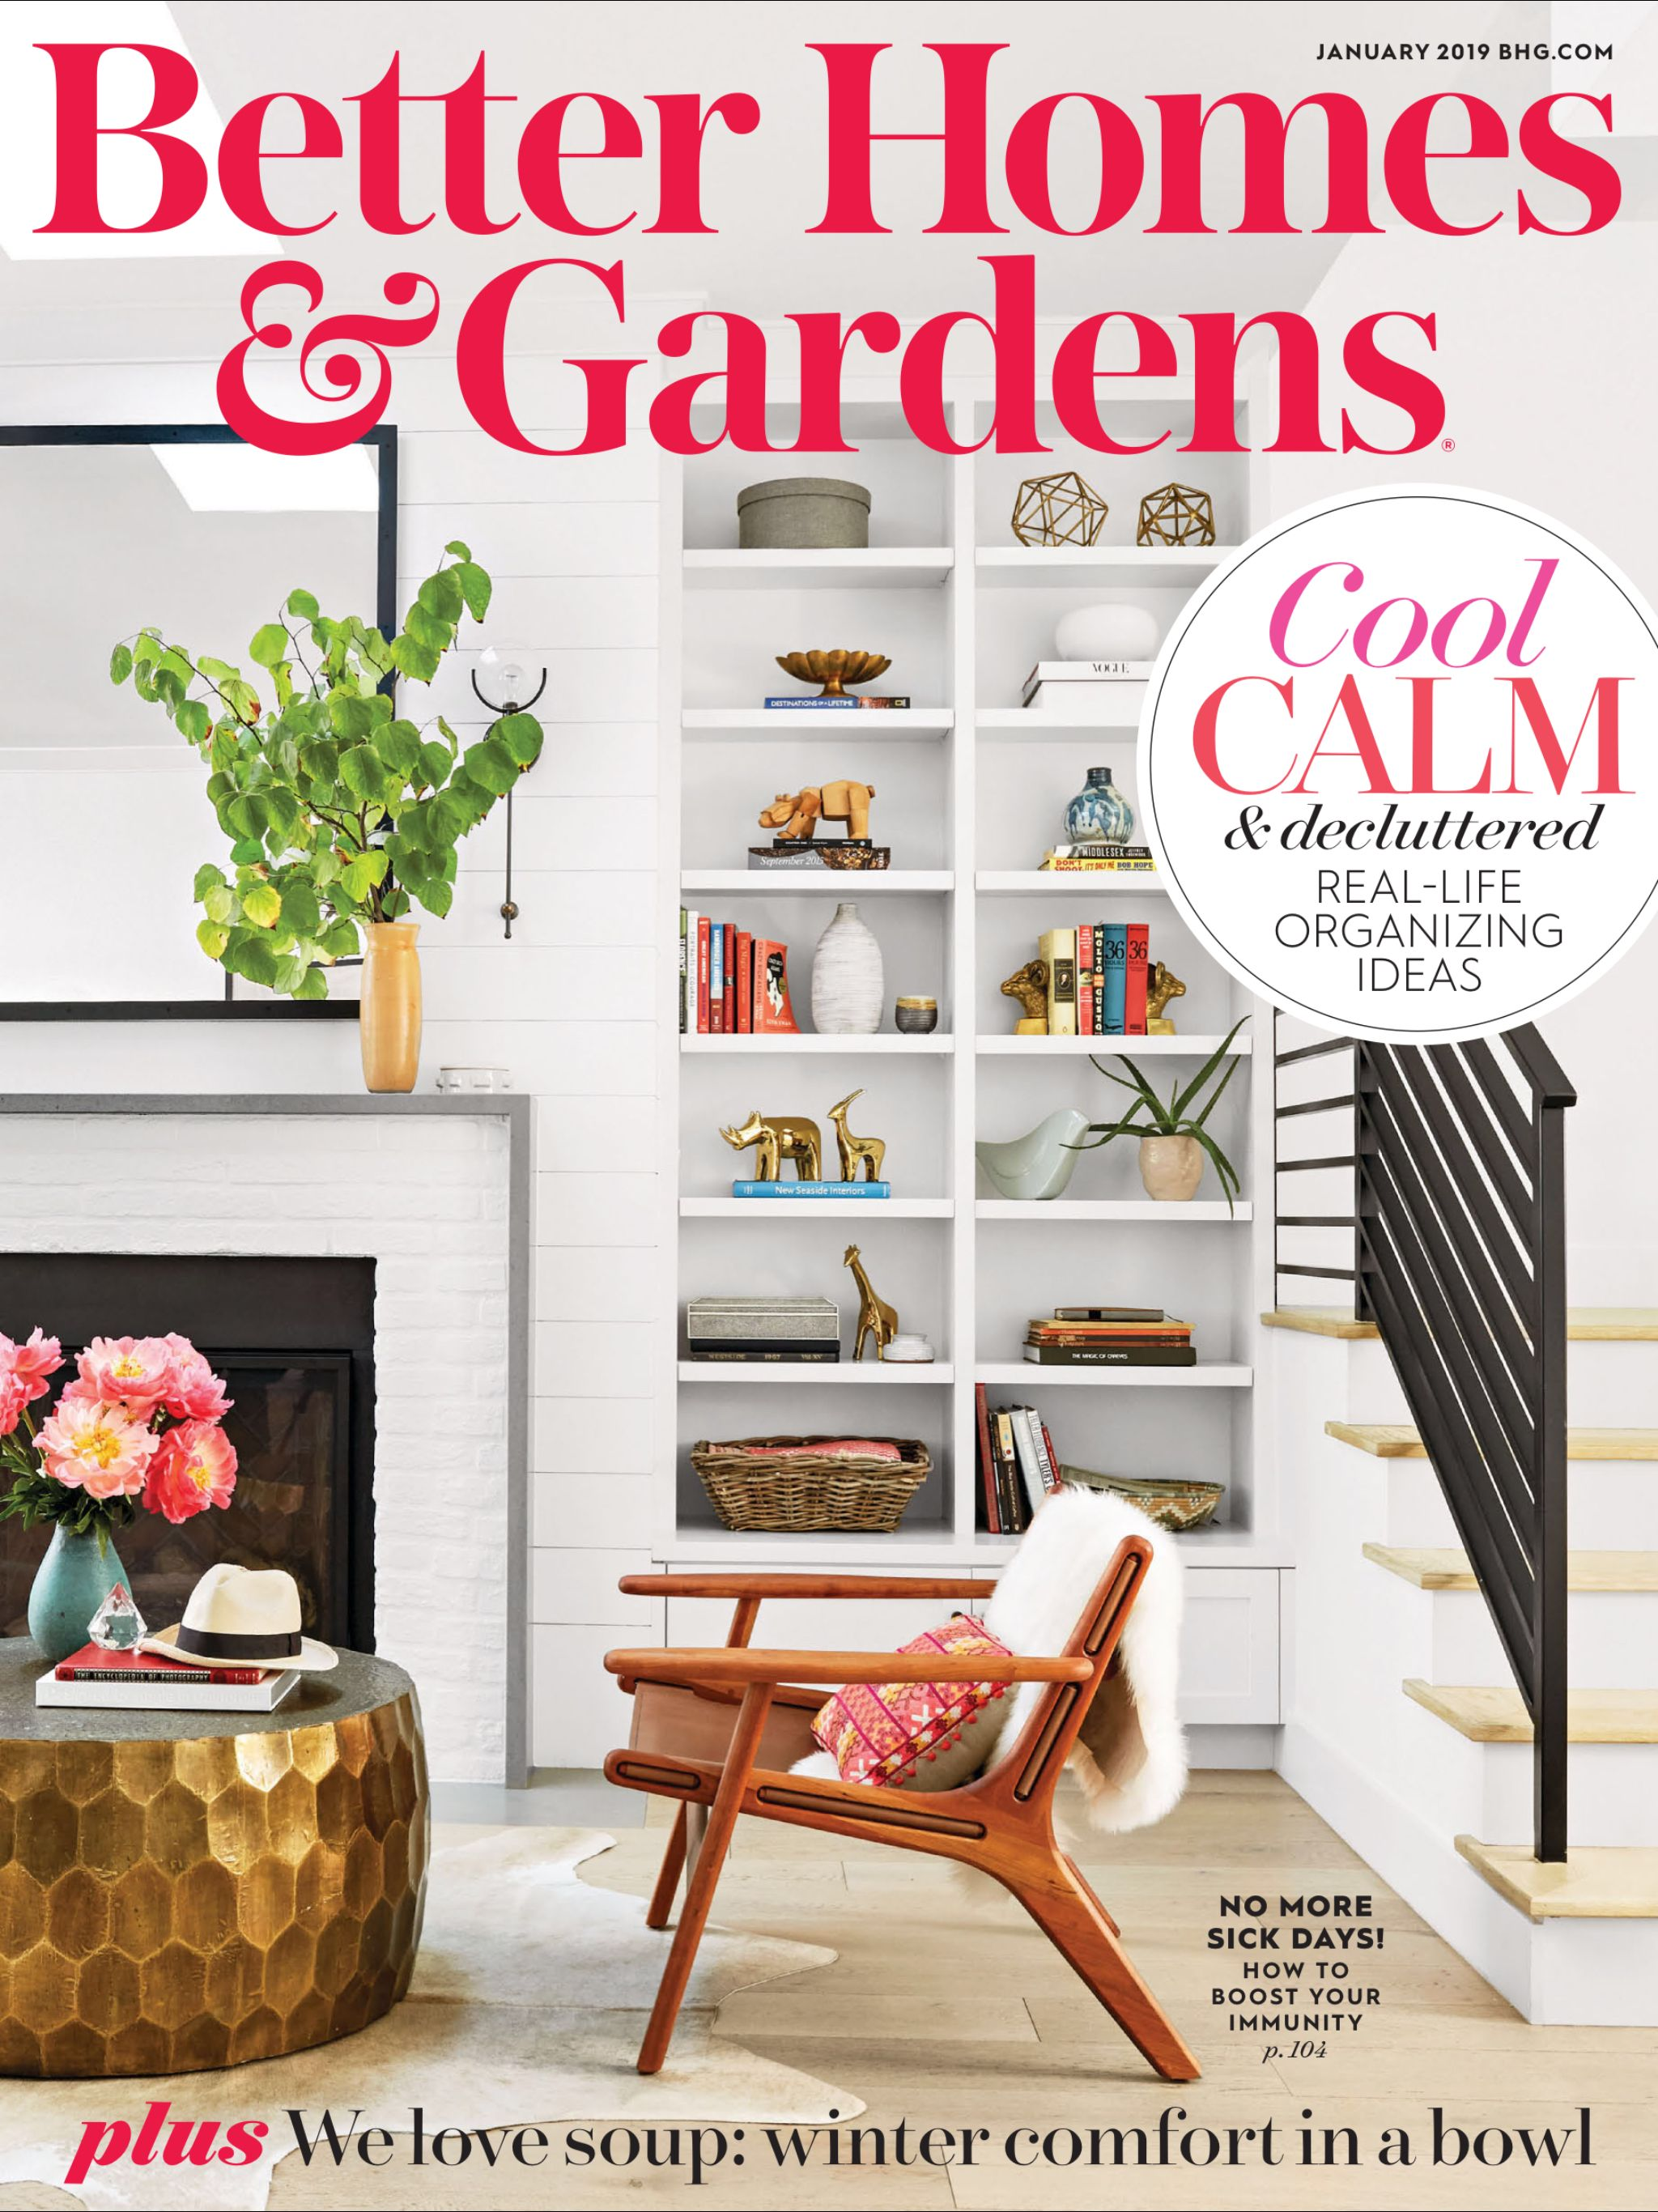 a2eea8f6321e937eb6cf535a314af92b - Better Homes And Gardens Special Interest Publications 2019